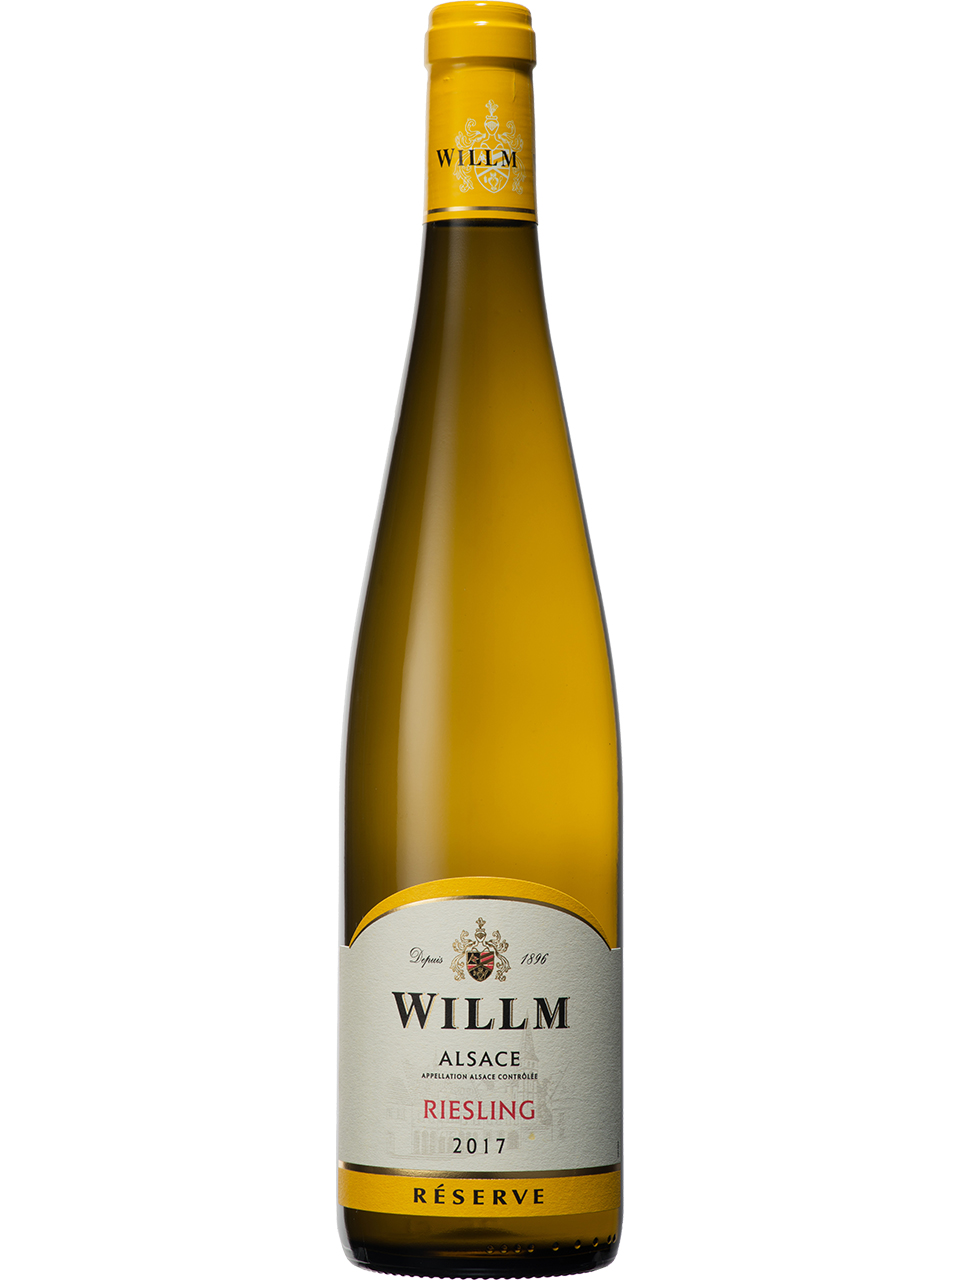 Alsace Willm Riesling Reserve